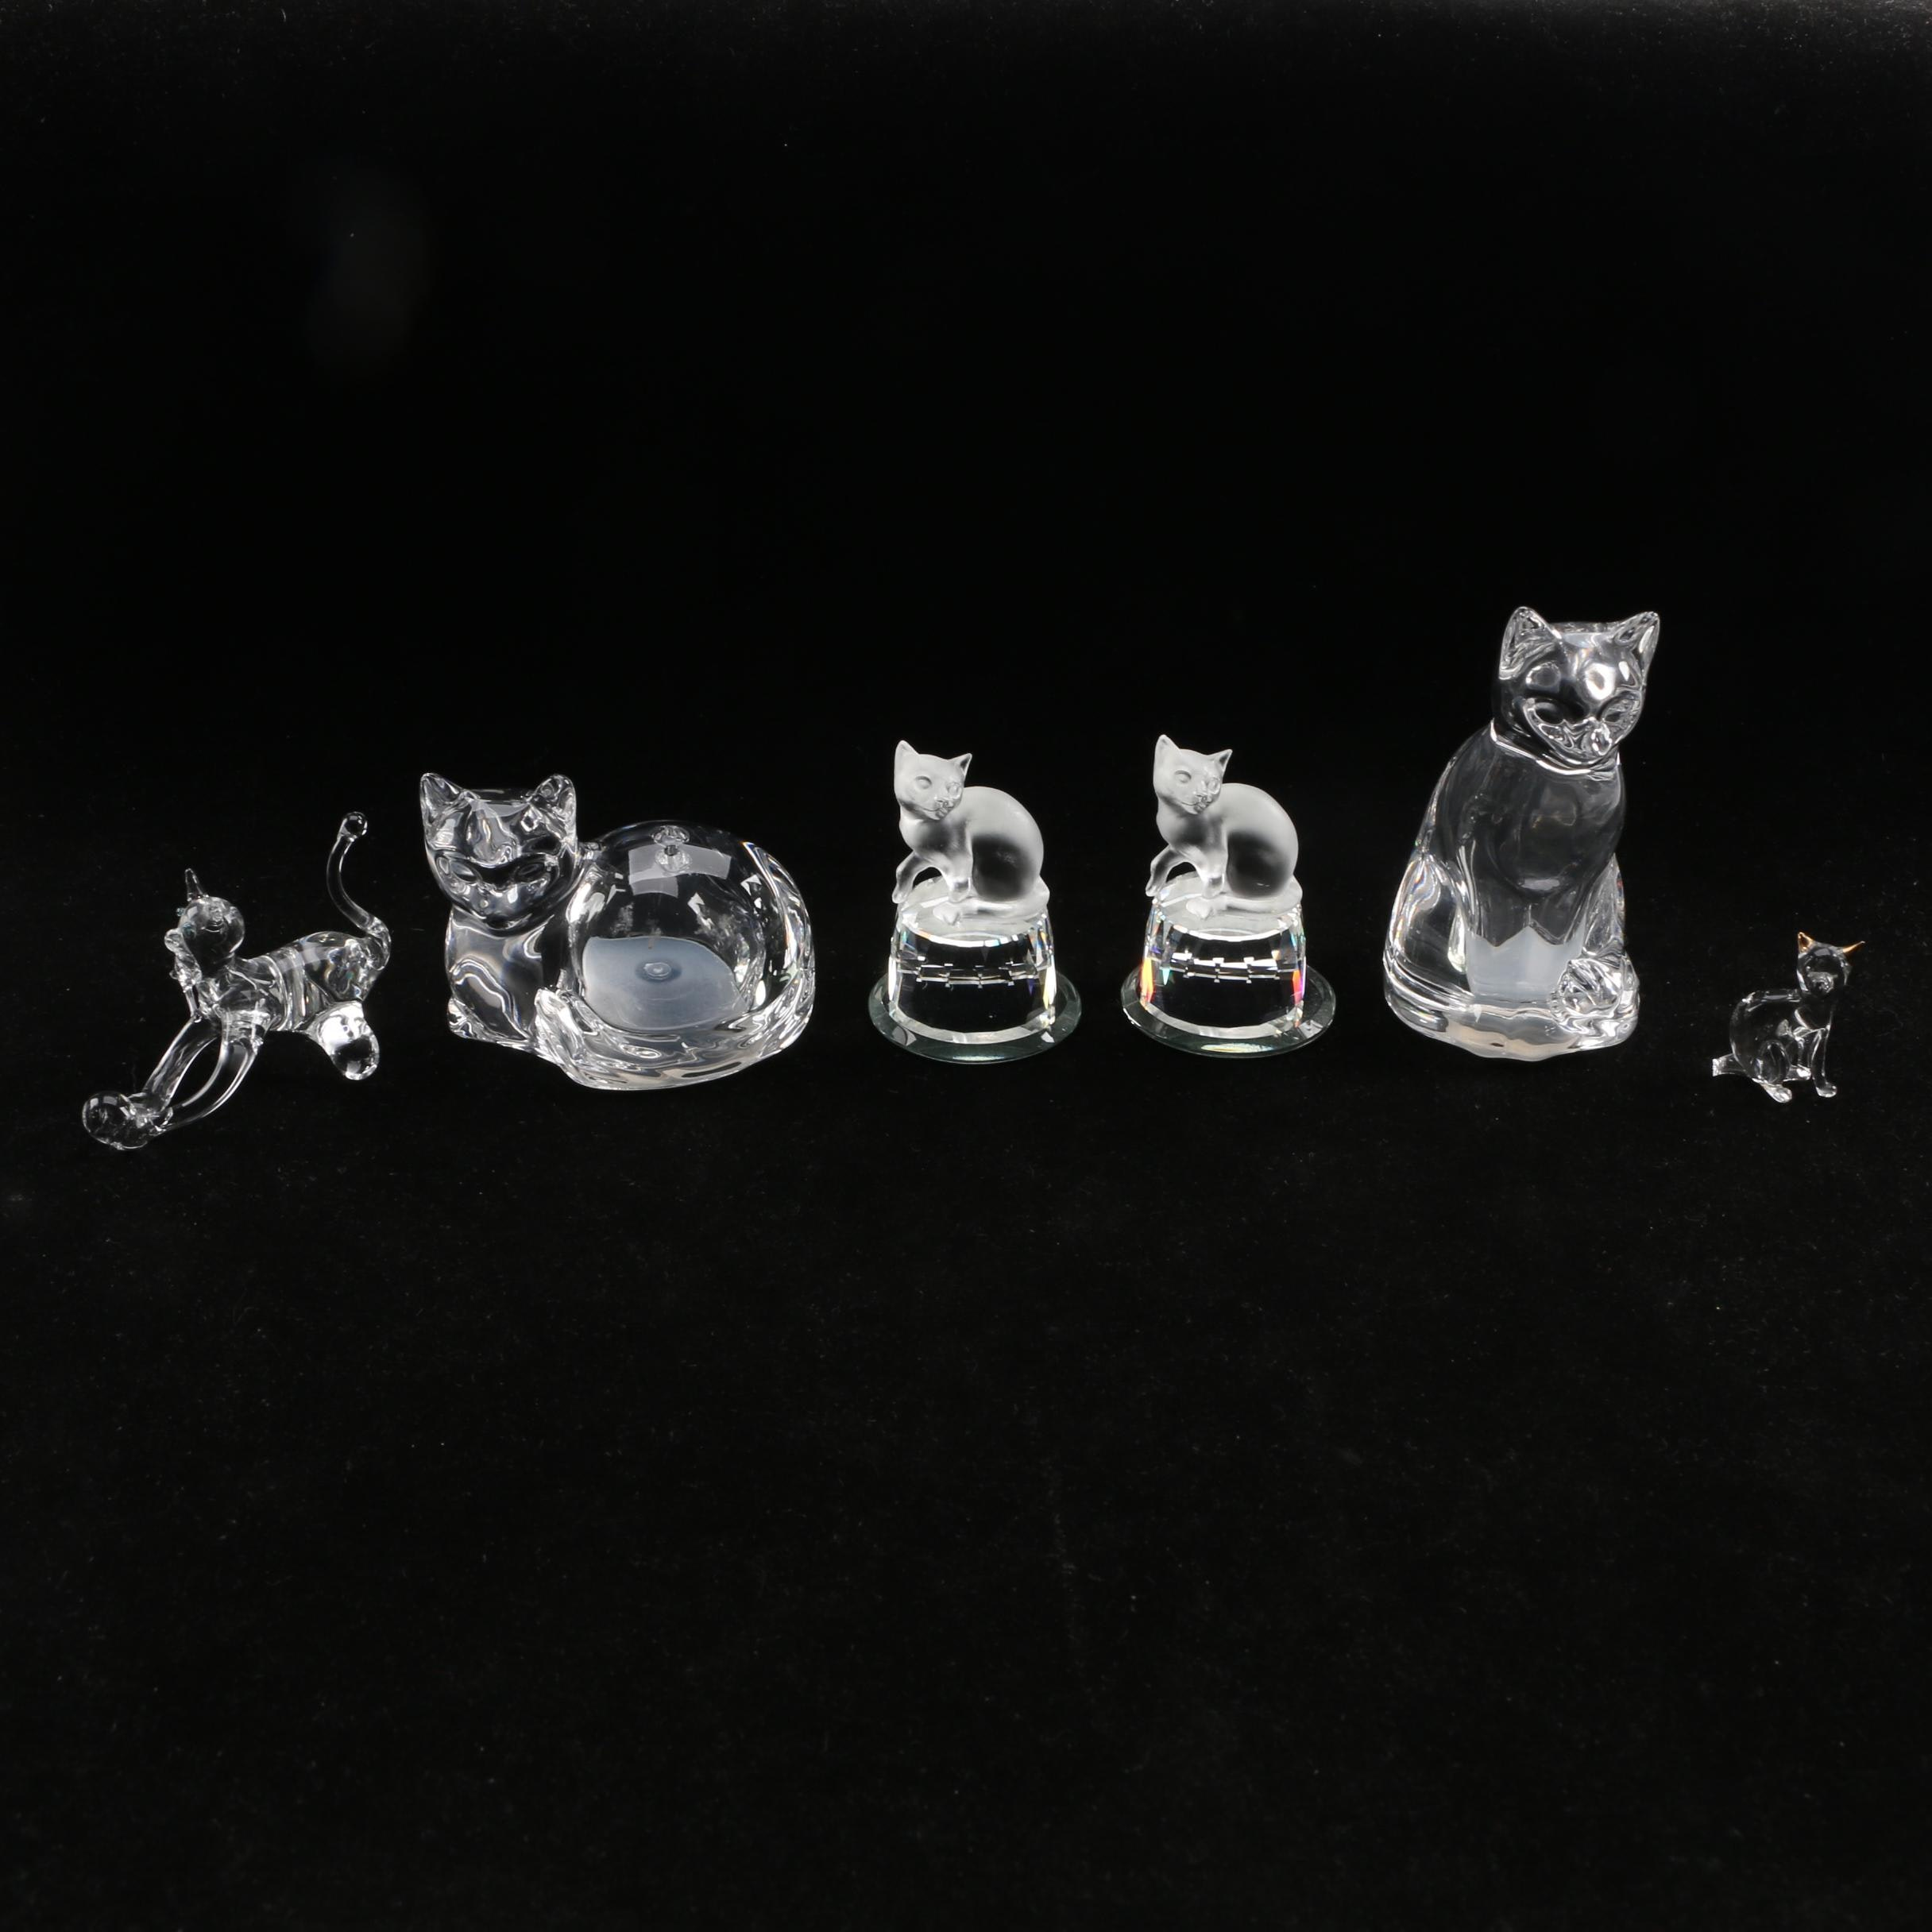 Glass Cat Figurines including Salt and Pepper Shakers